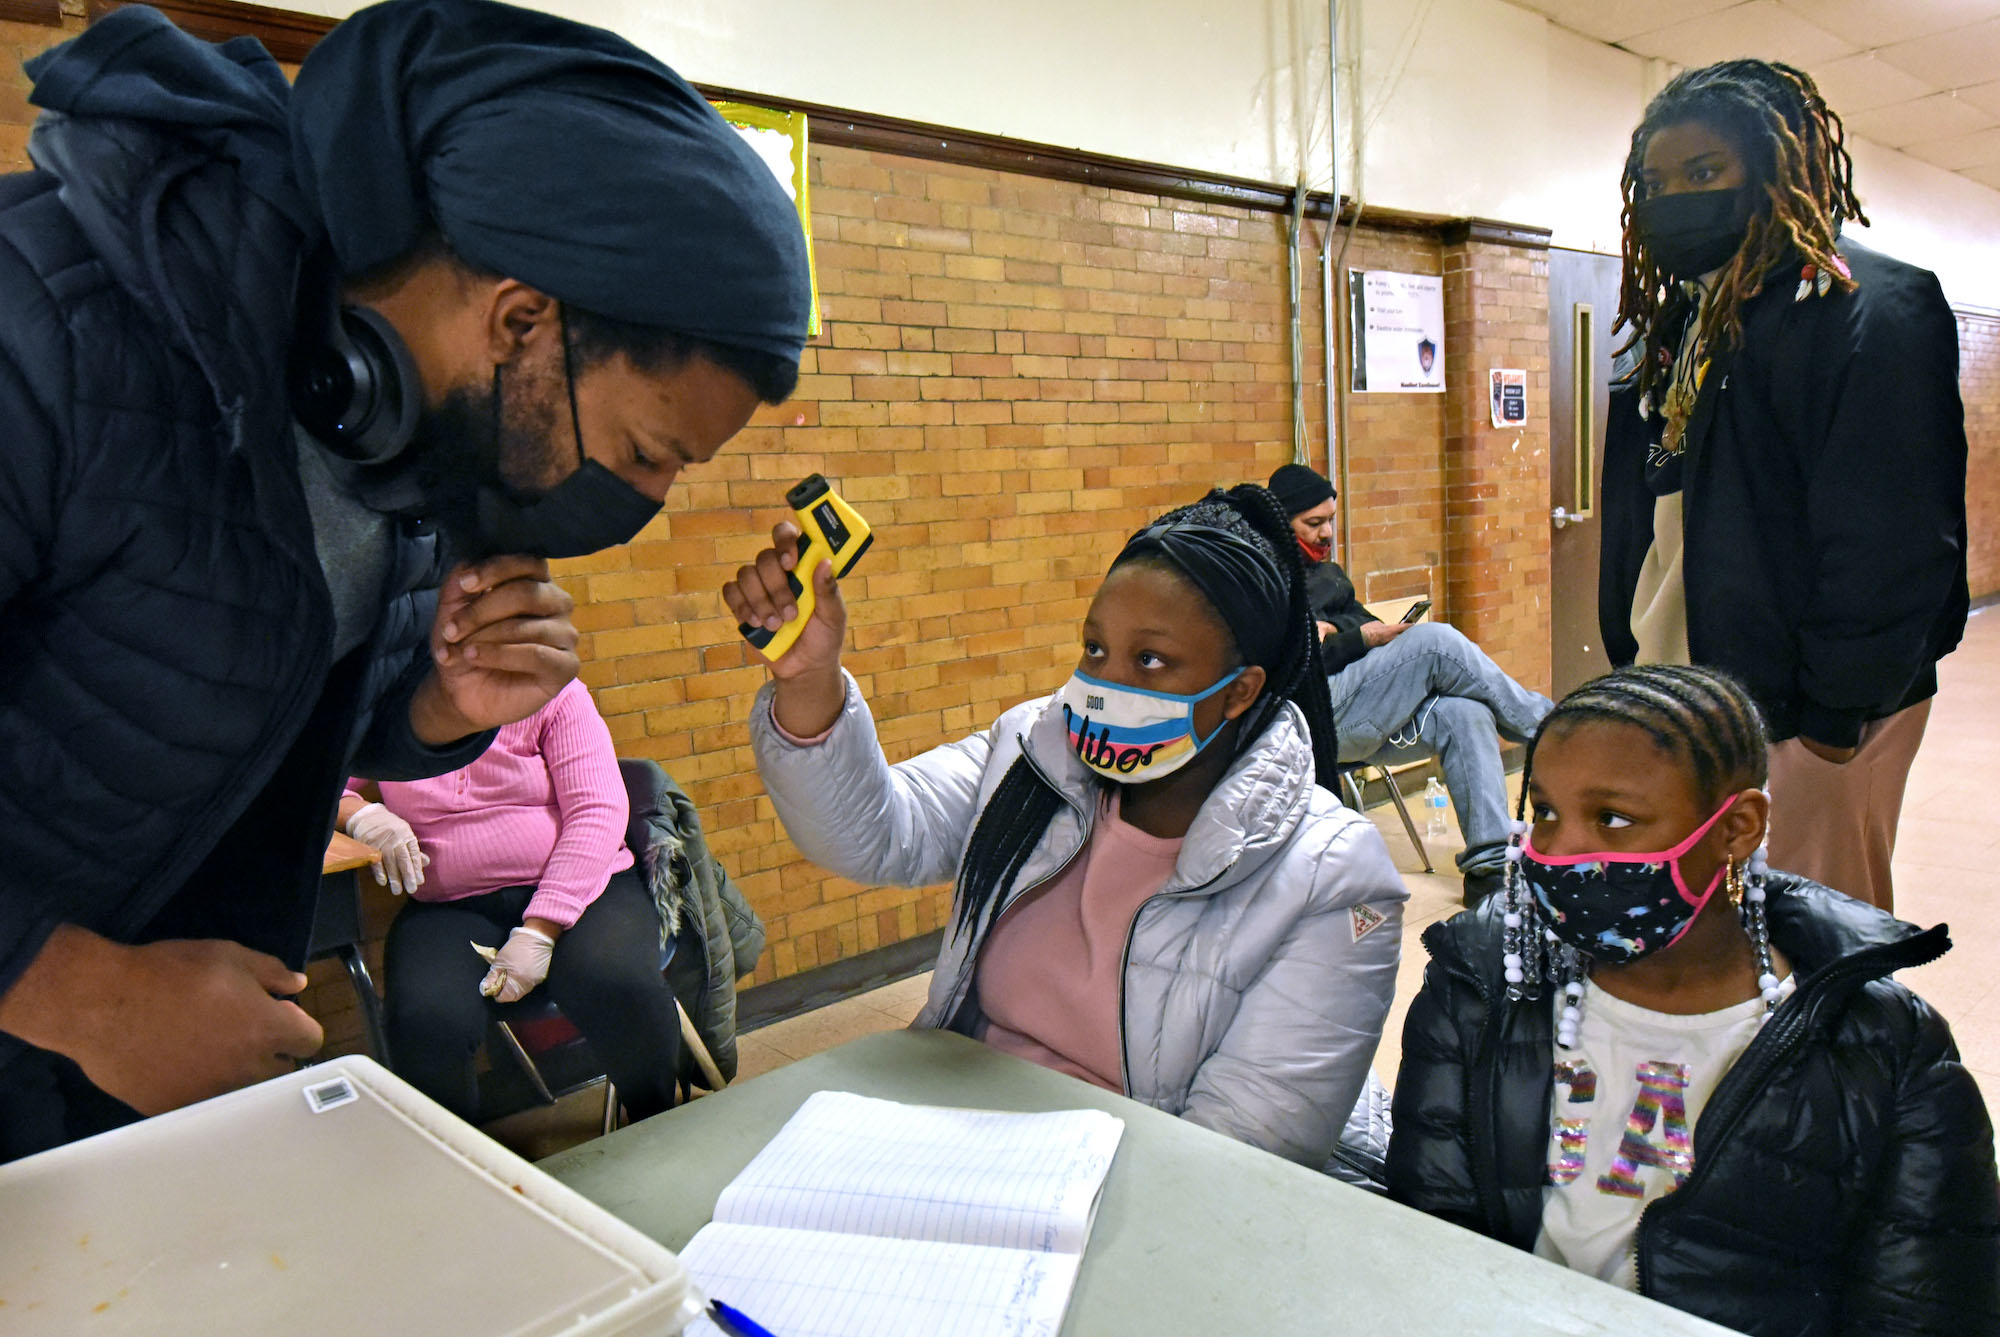 Shaniah Allen, 11, and her sister Taliah Allen, 8; take the temperatures of those who enter